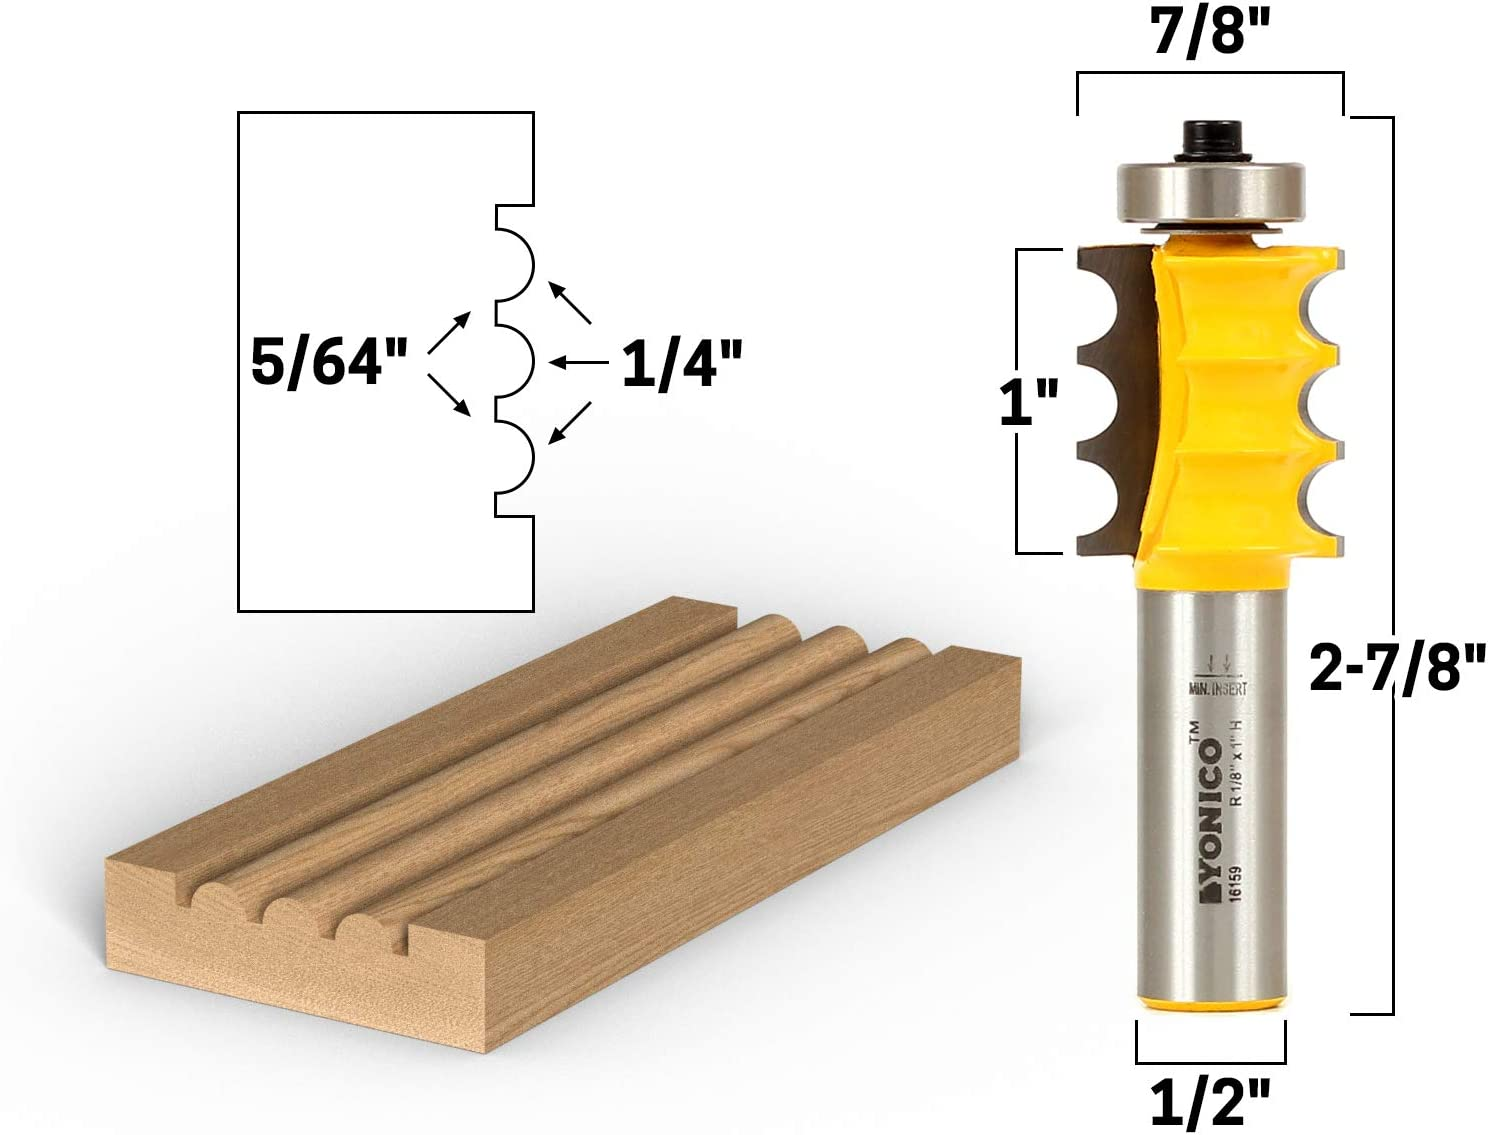 Yonico 13191q 1//4-Inch Bead Bullnose Bead Router Bit 1//4-Inch Shank